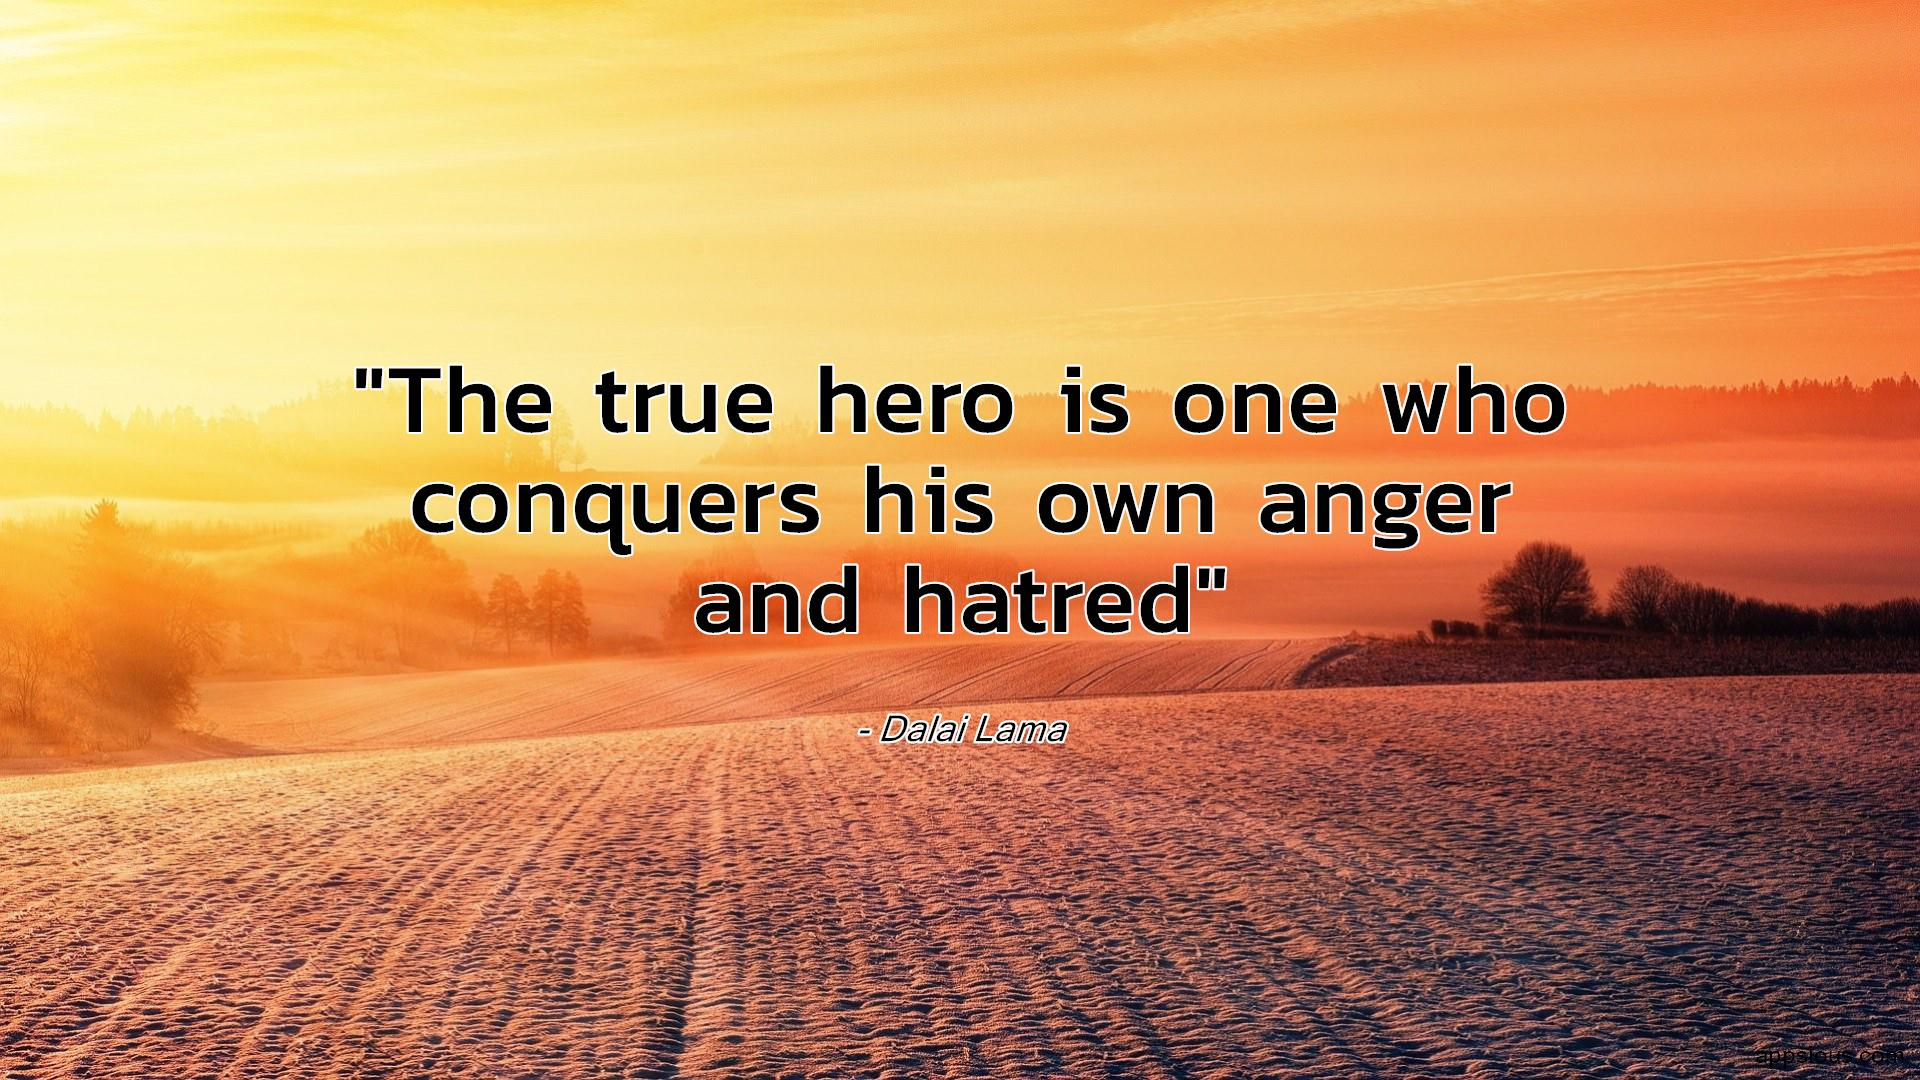 The true hero is one who conquers his own anger and hatred